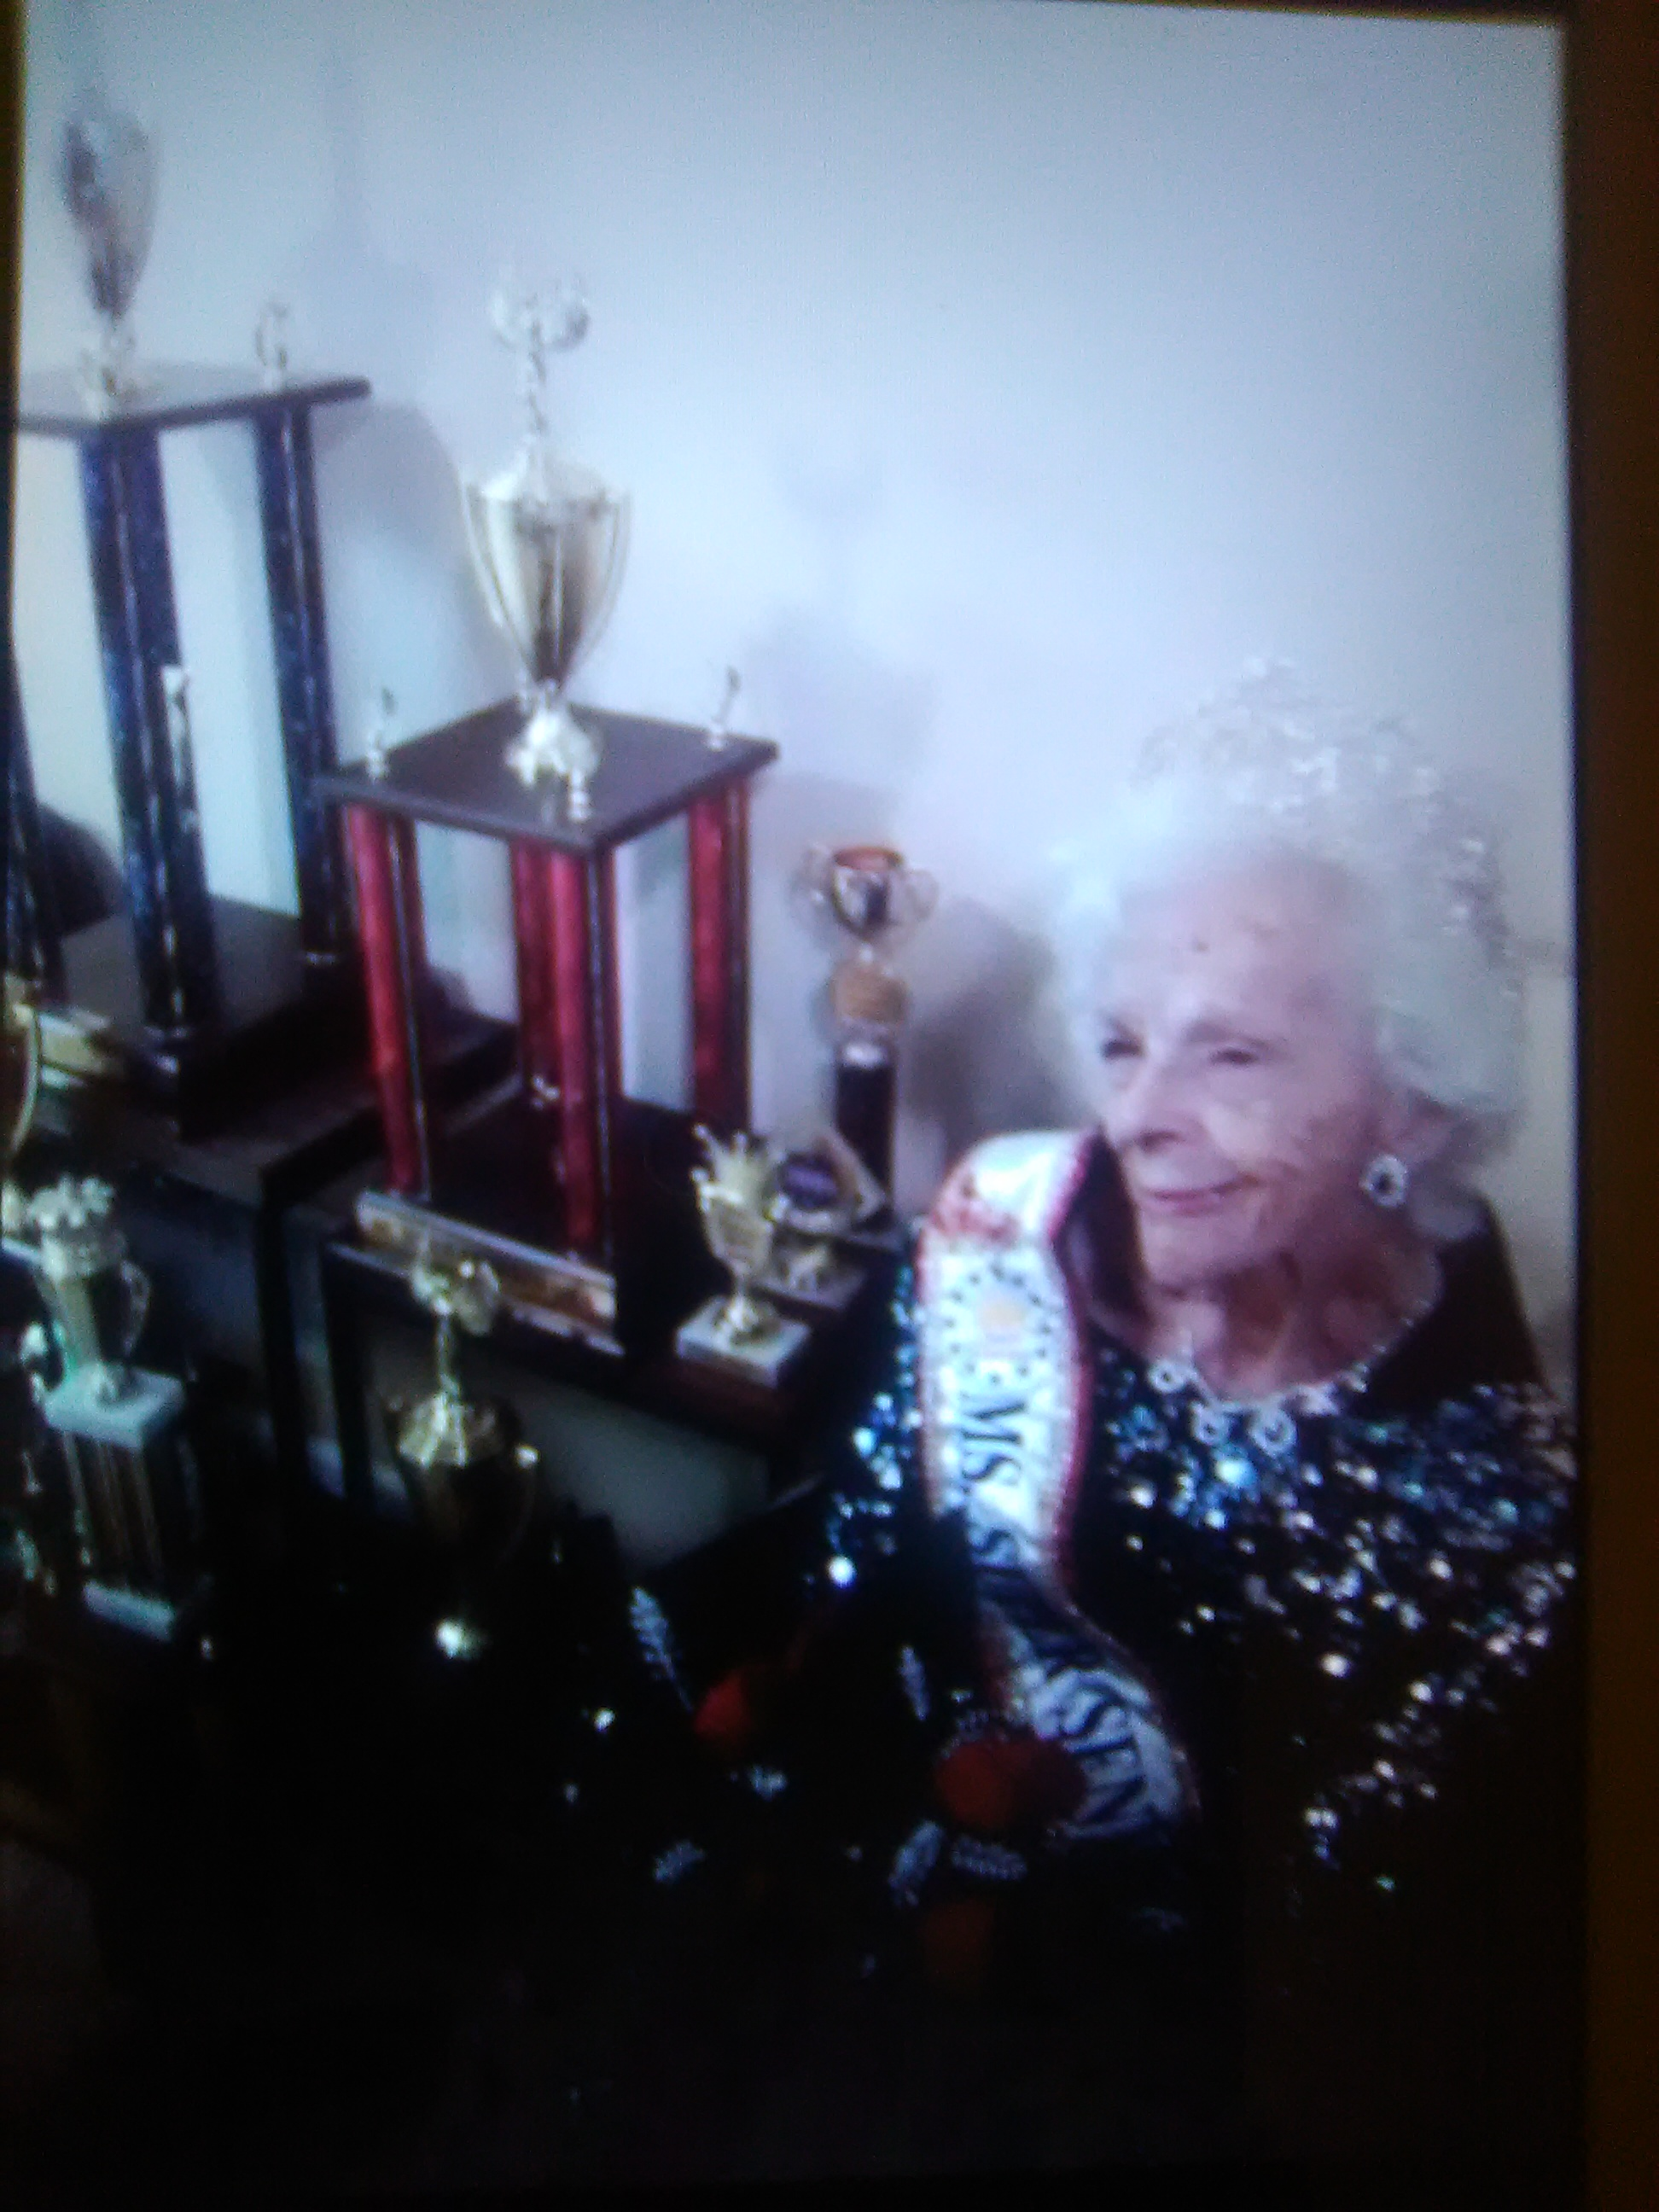 JUNE LYNNE LACEY WITH ALL THE TROPHIES SHE WON ONLY A MONTH BEFORE SHE WAS TAKEN PRISONER, HAD ALL HER HUMAN RIGHTS VIOLATED AND HER UNITED STATES CONSTITUTIONAL RIGHTS TAKEN AWAY!